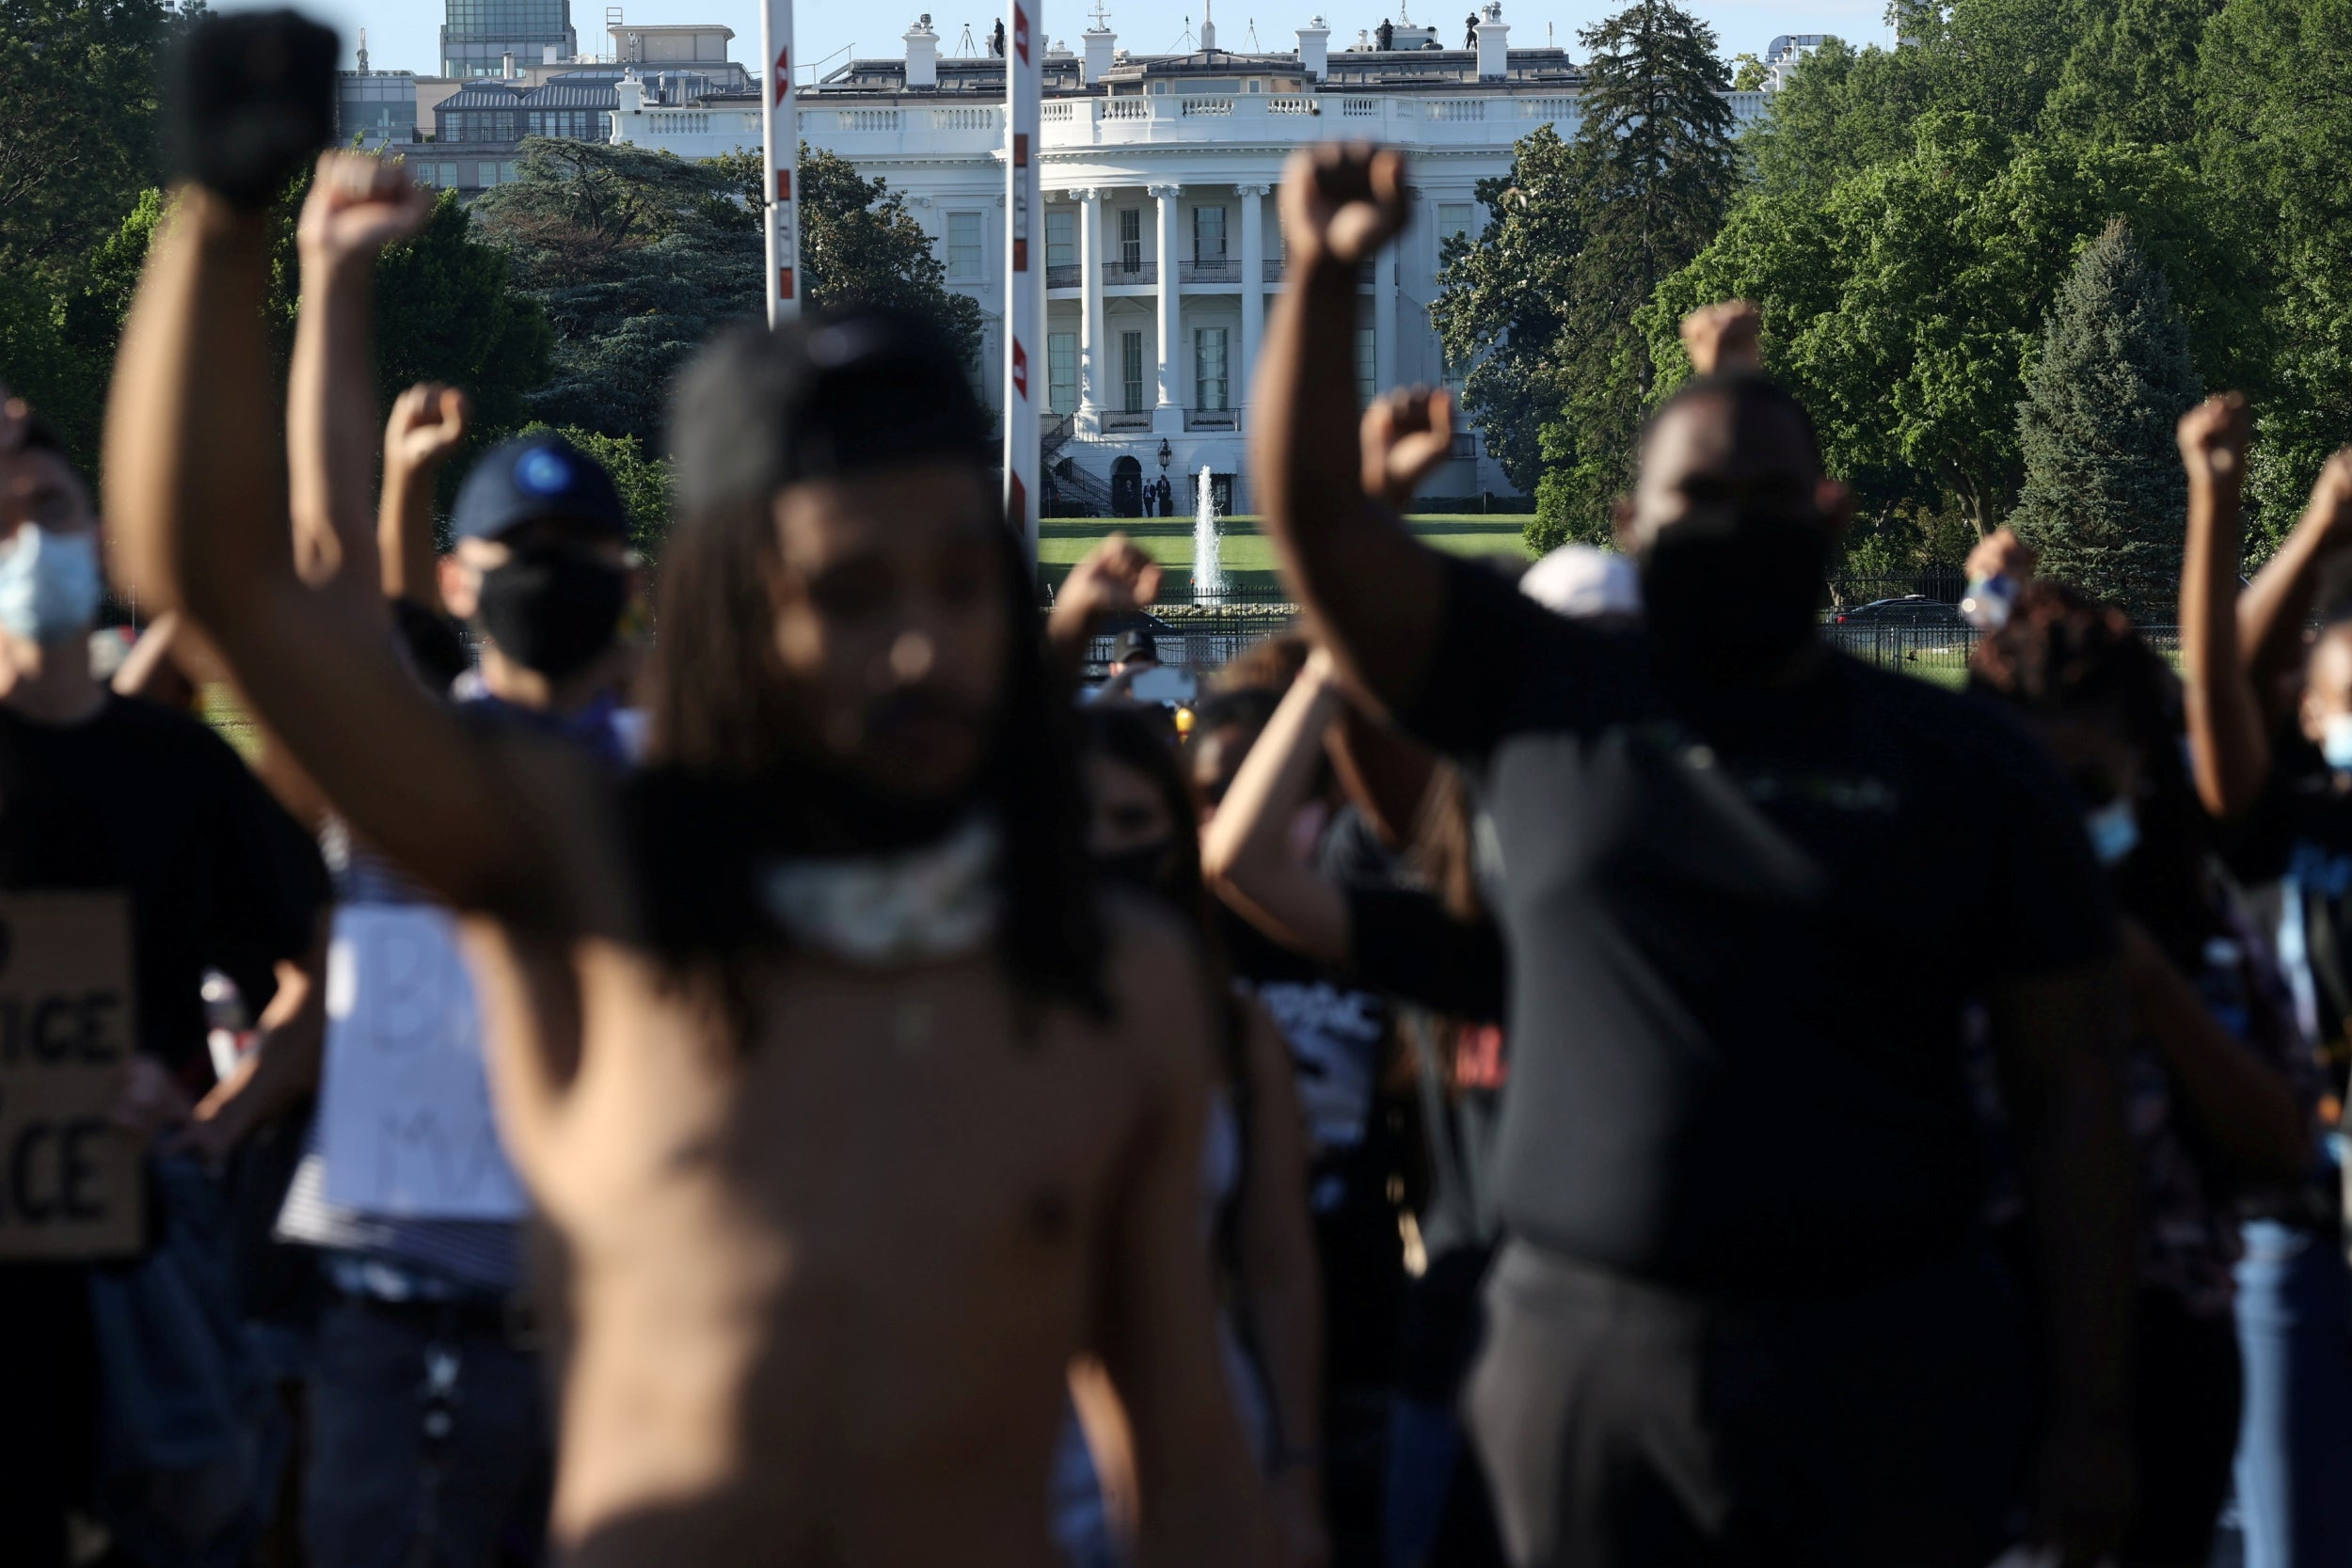 George Floyd protests - live: Fuel truck drives at protesters as Trump remains out of sight in night of fresh rage across US cities